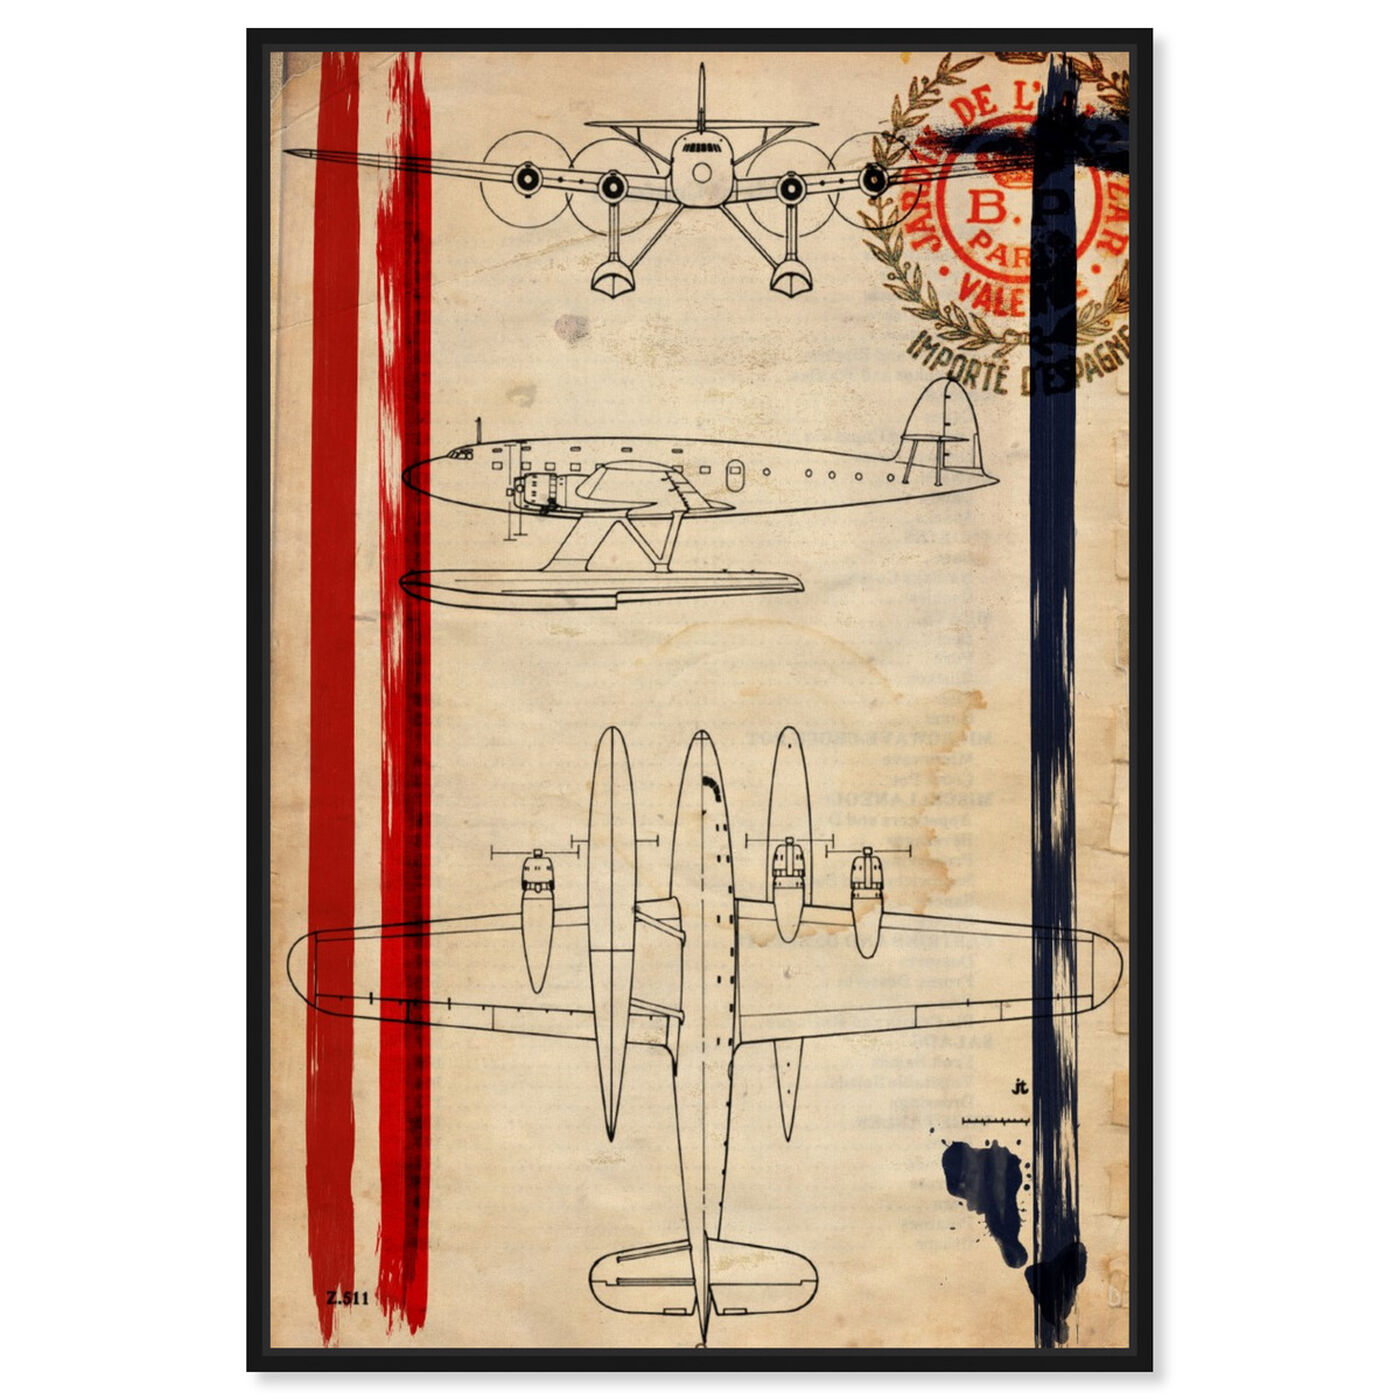 Front view of Air Espagne France 1944 featuring transportation and airplanes art.